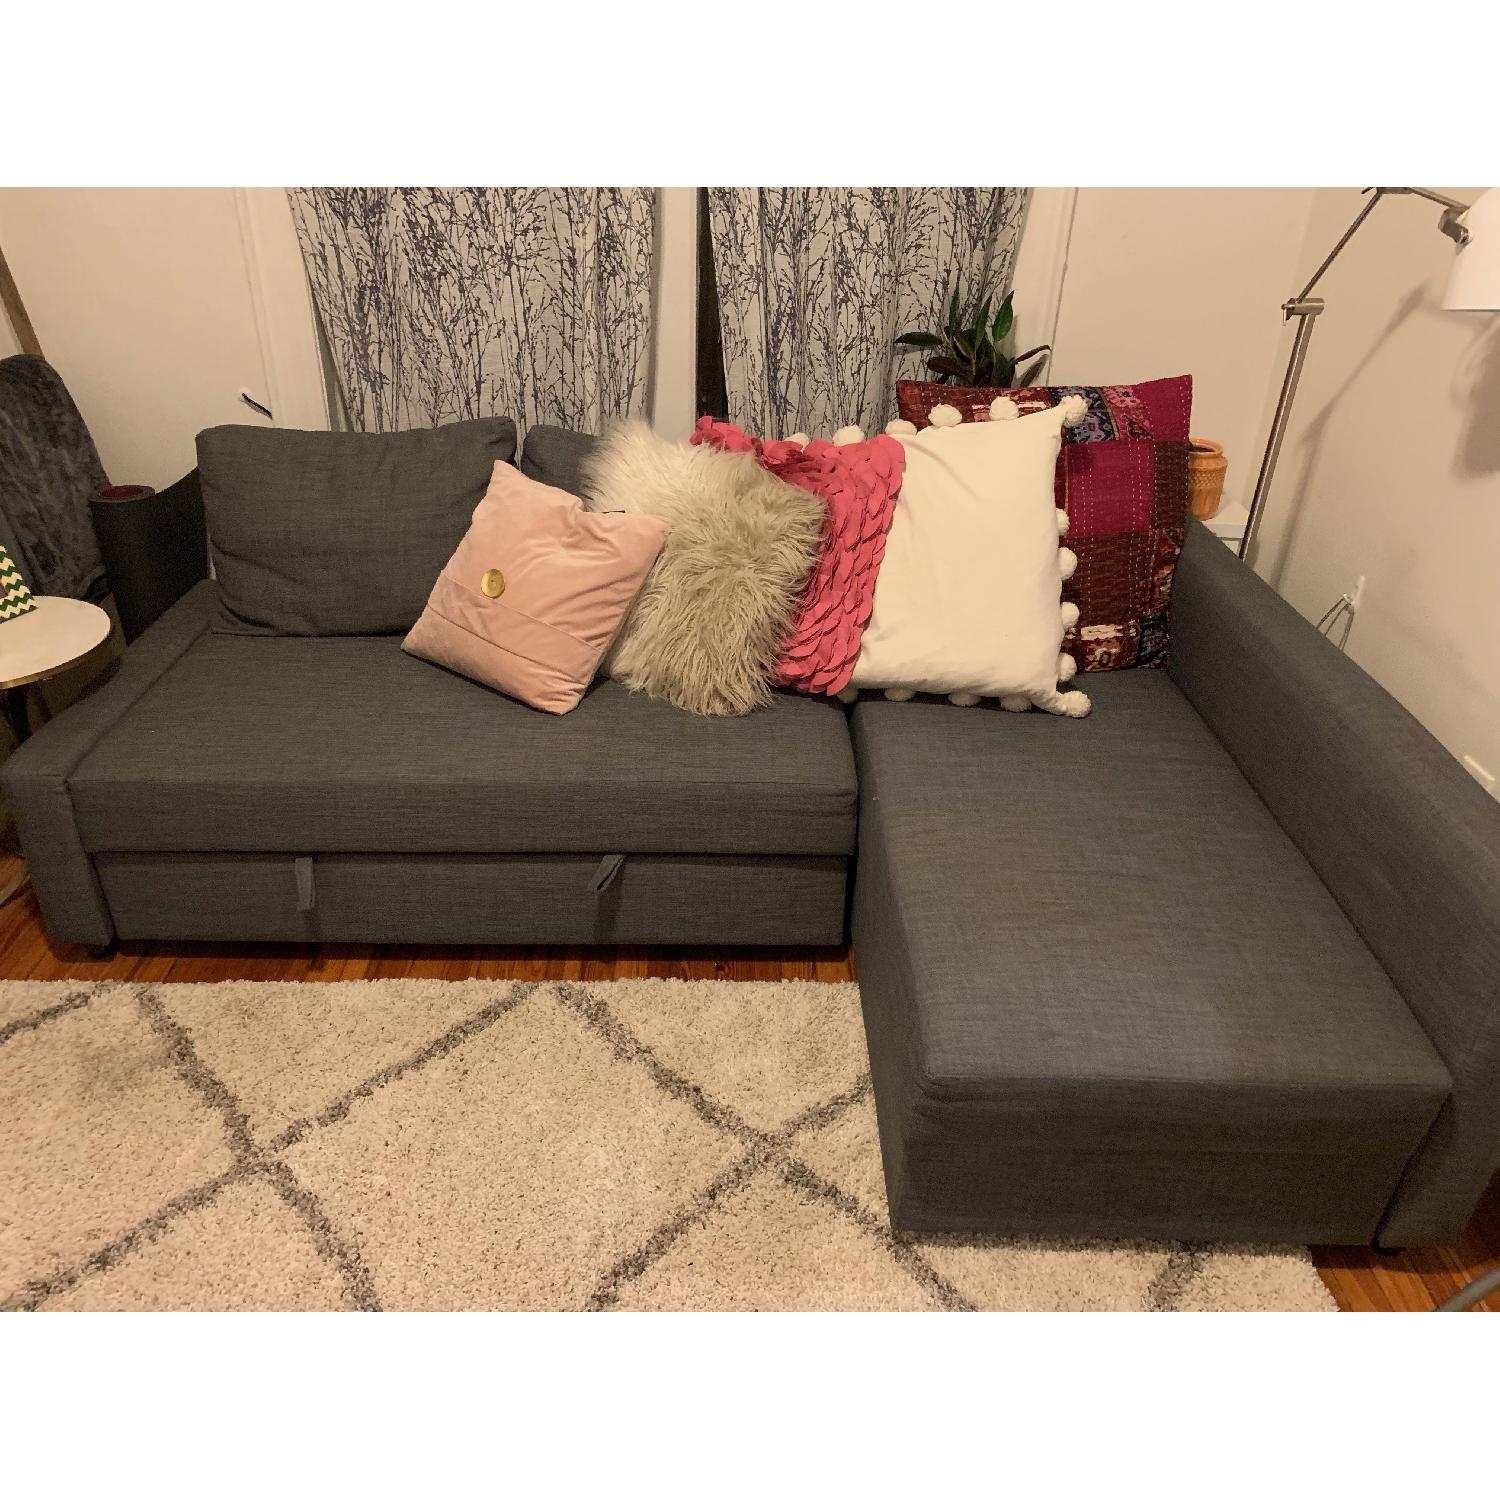 Pleasant Ikea Friheten Sleeper Sectional Sofa W Storage Aptdeco Machost Co Dining Chair Design Ideas Machostcouk